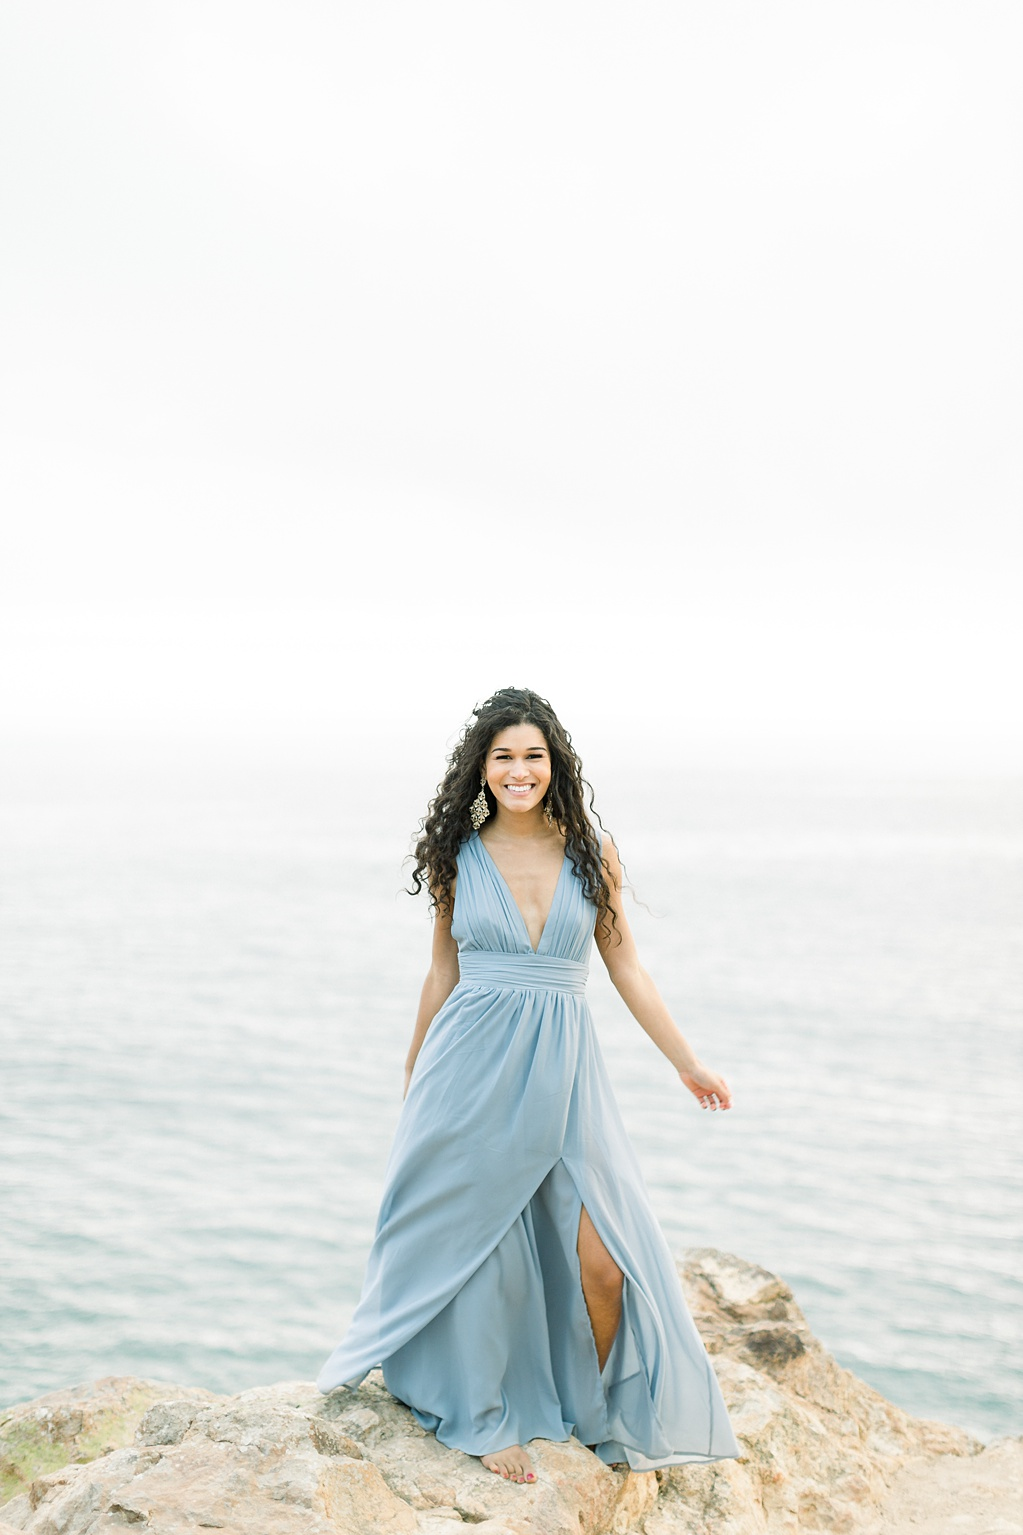 Malibu Cliff Side Engagement Session at Point Dume by Madison Ellis Photography (28)